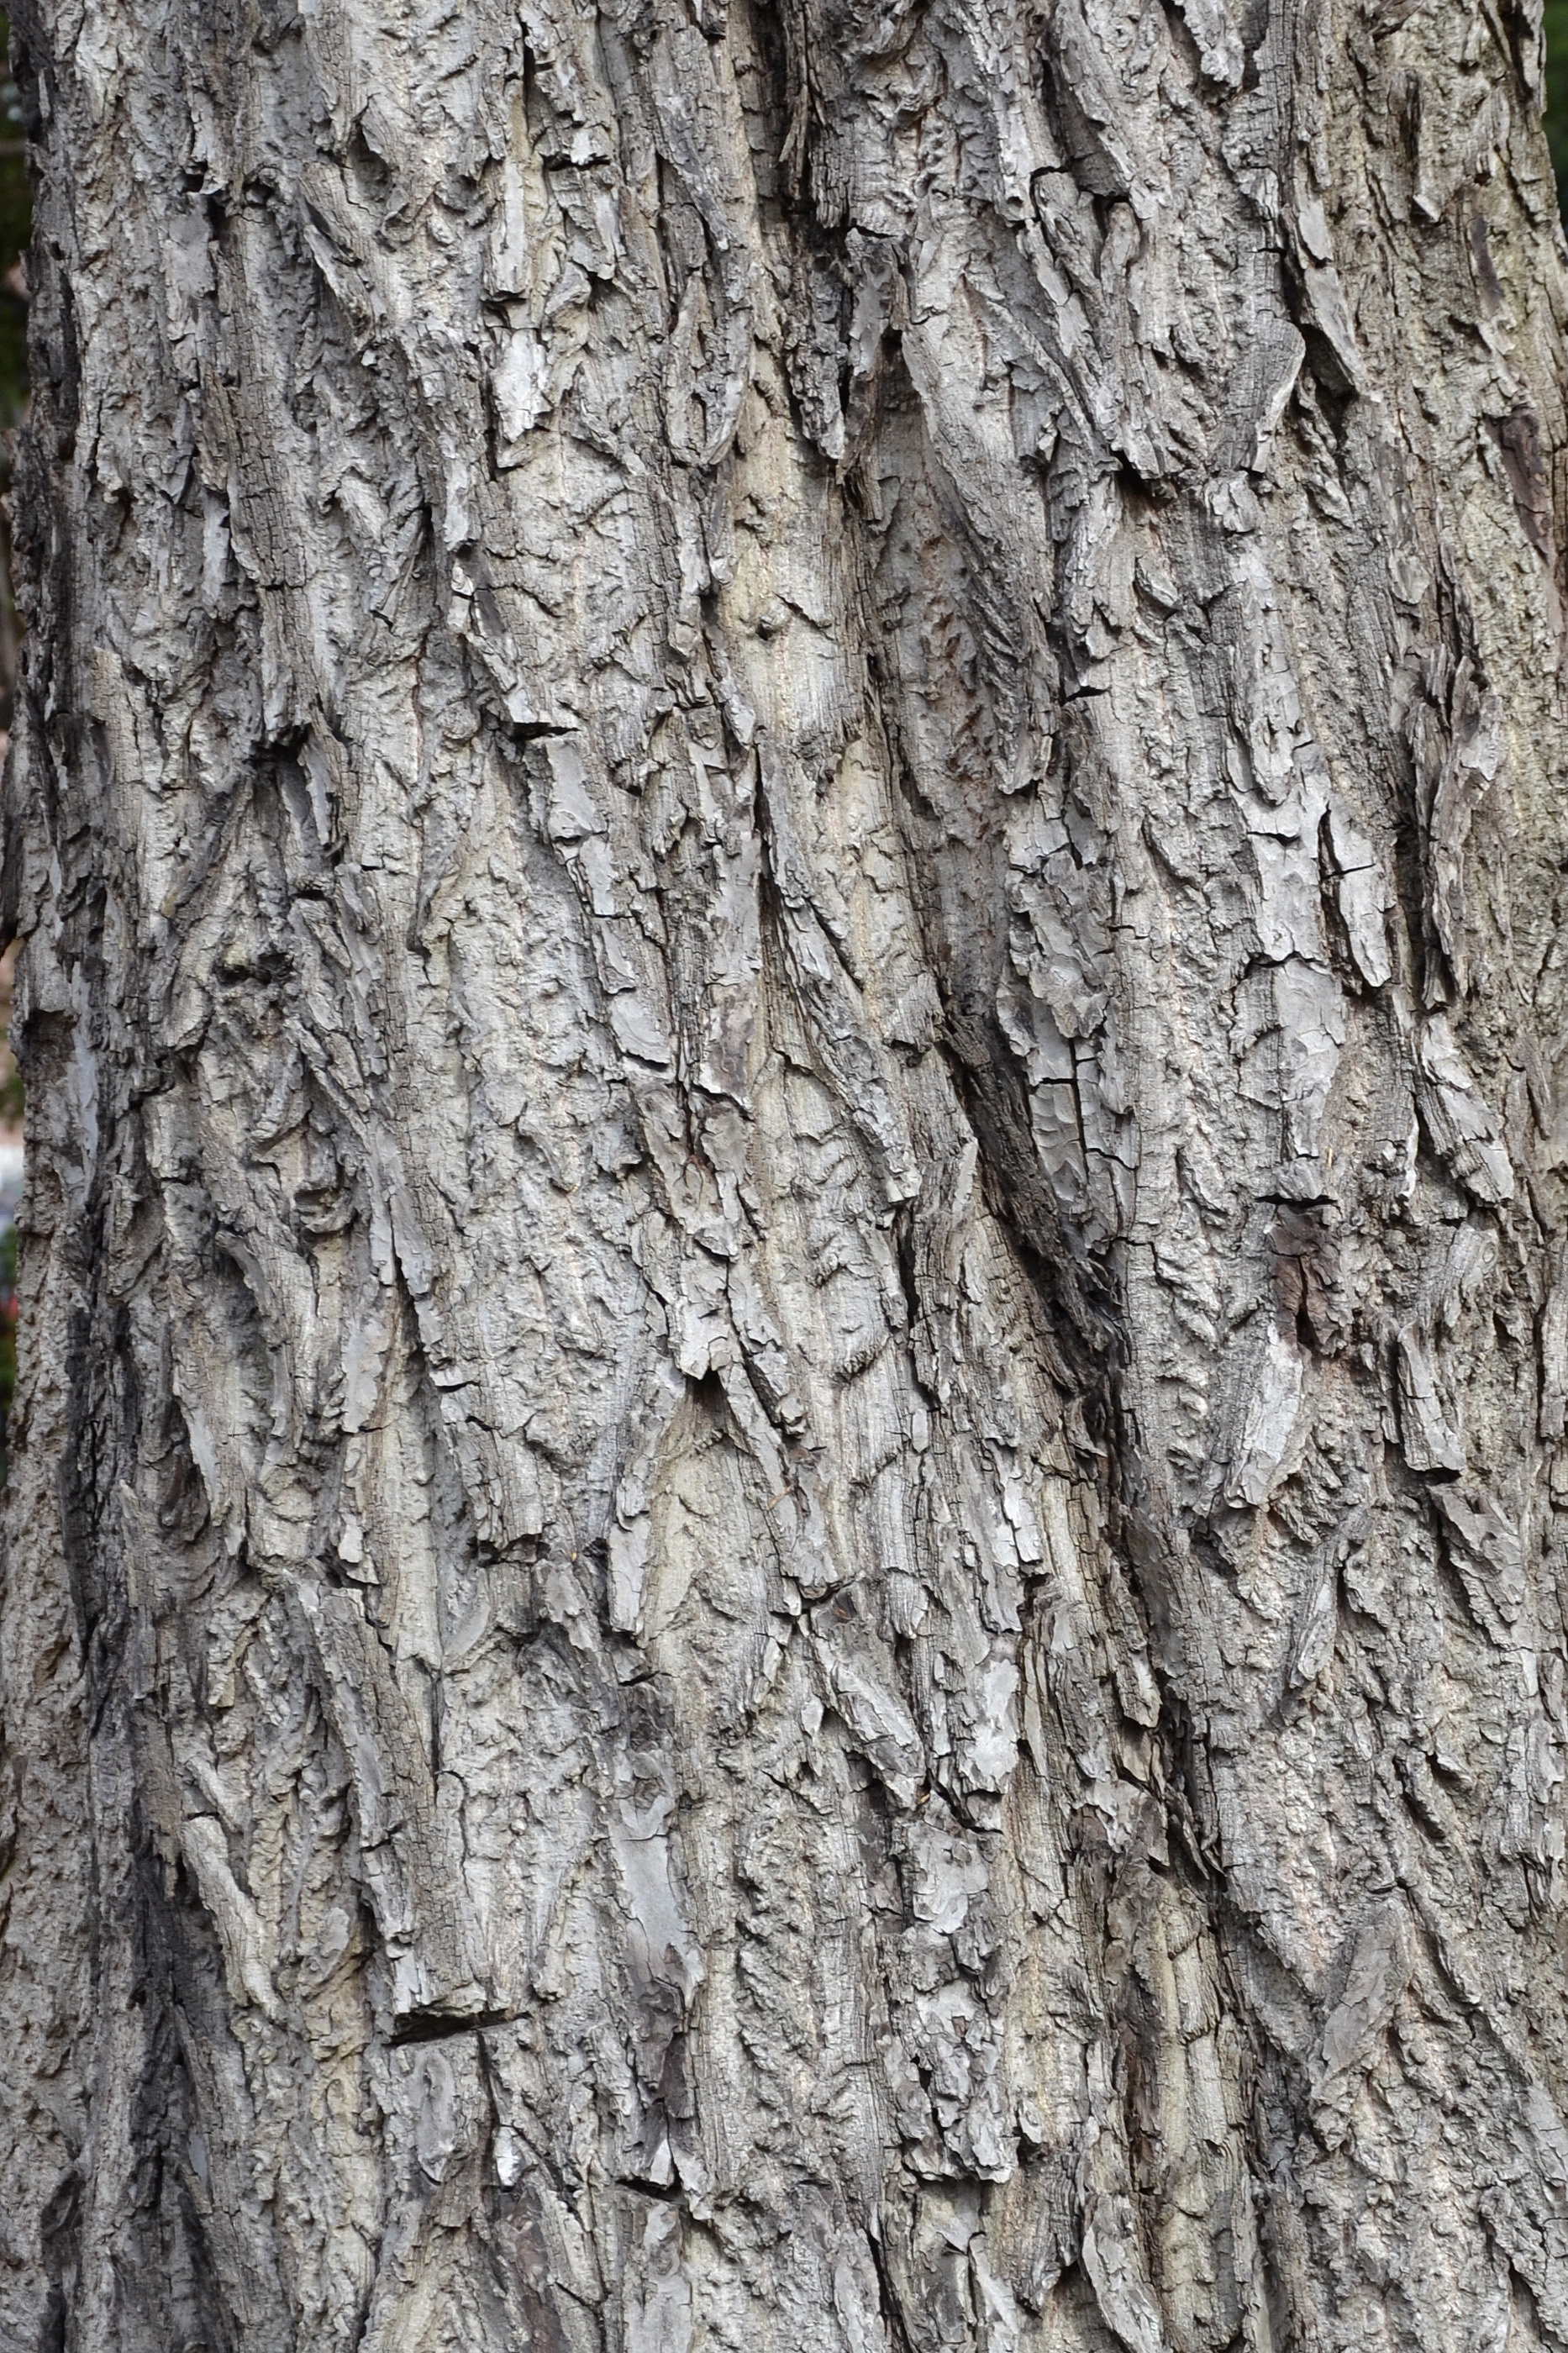 Bark of white walnut photo